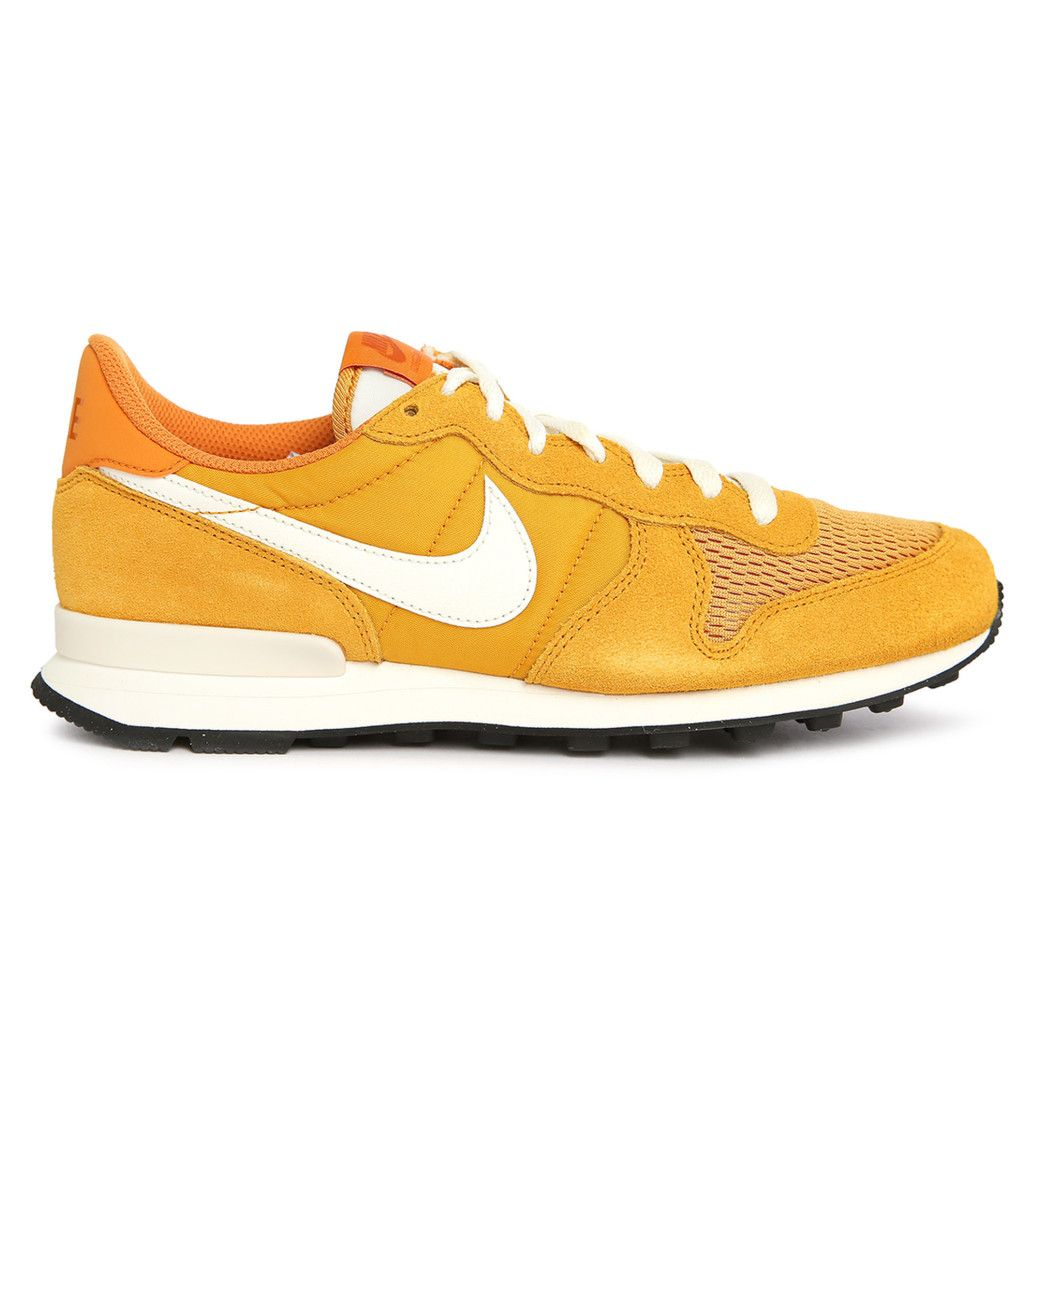 brand new e35d6 1807b Nike   Yellow Internationalist Curry Suede mesh Sneakers for Men   Lyst